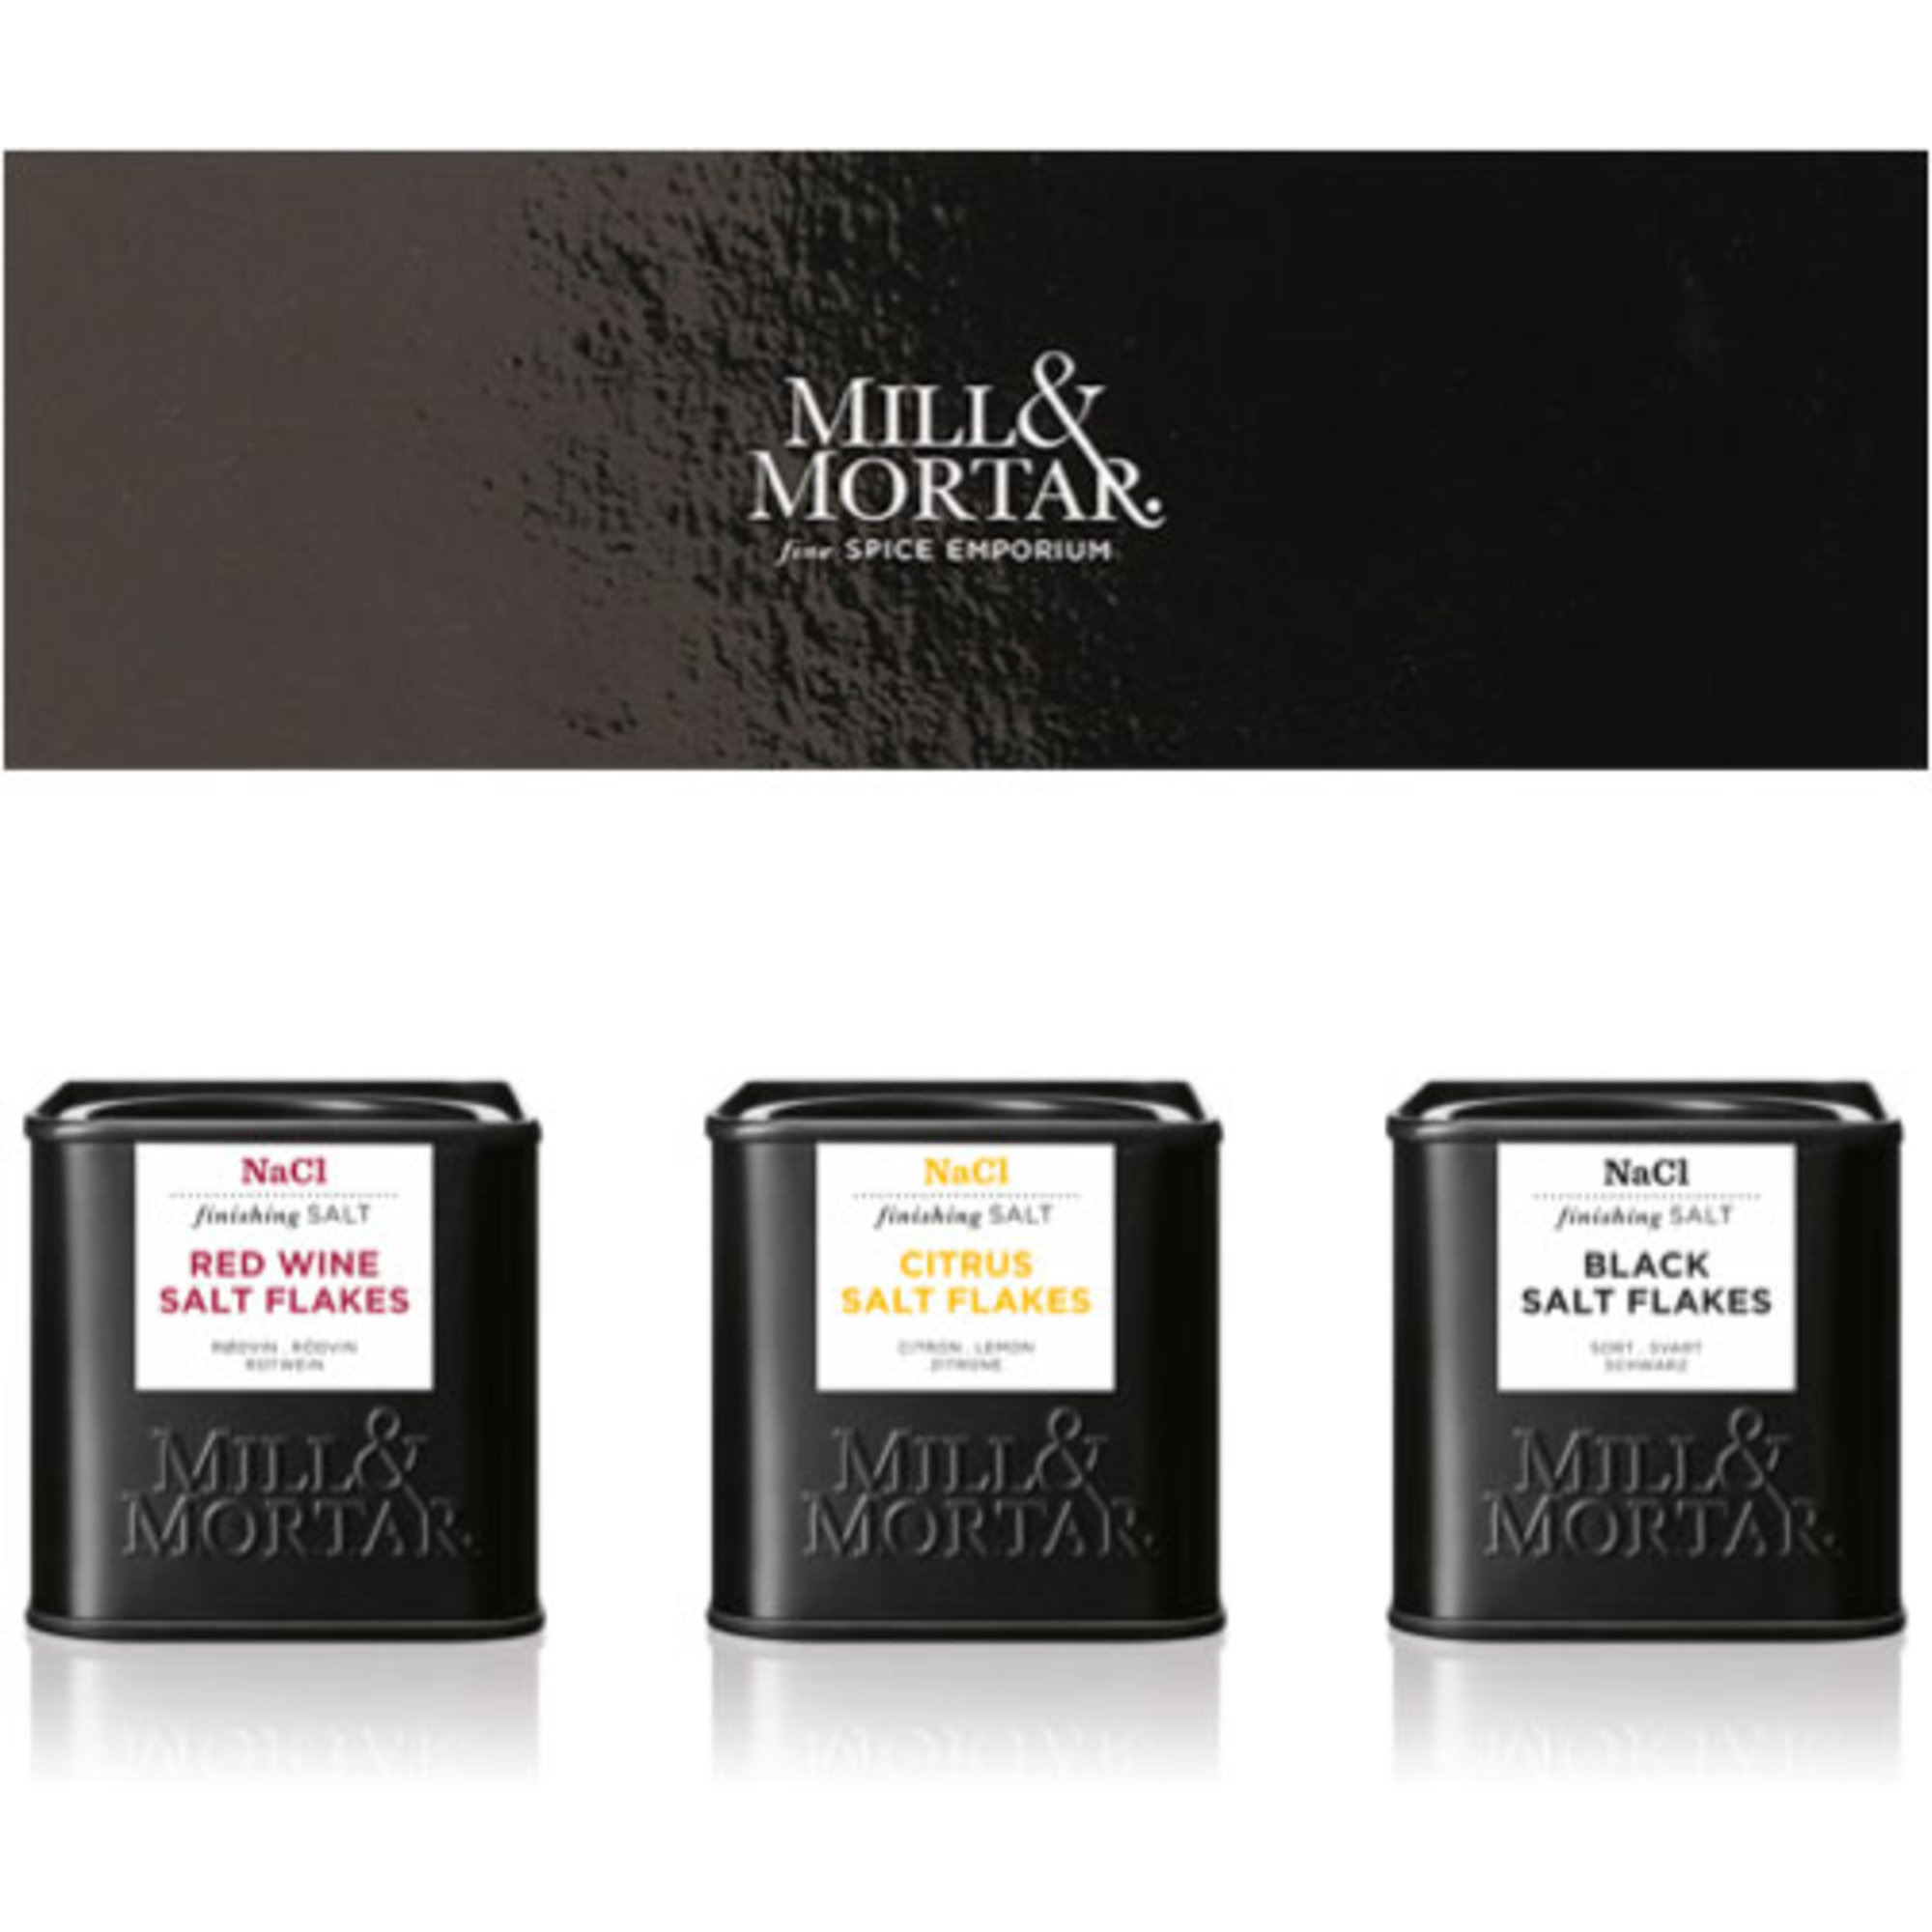 Mill & Mortar Finishing Salts